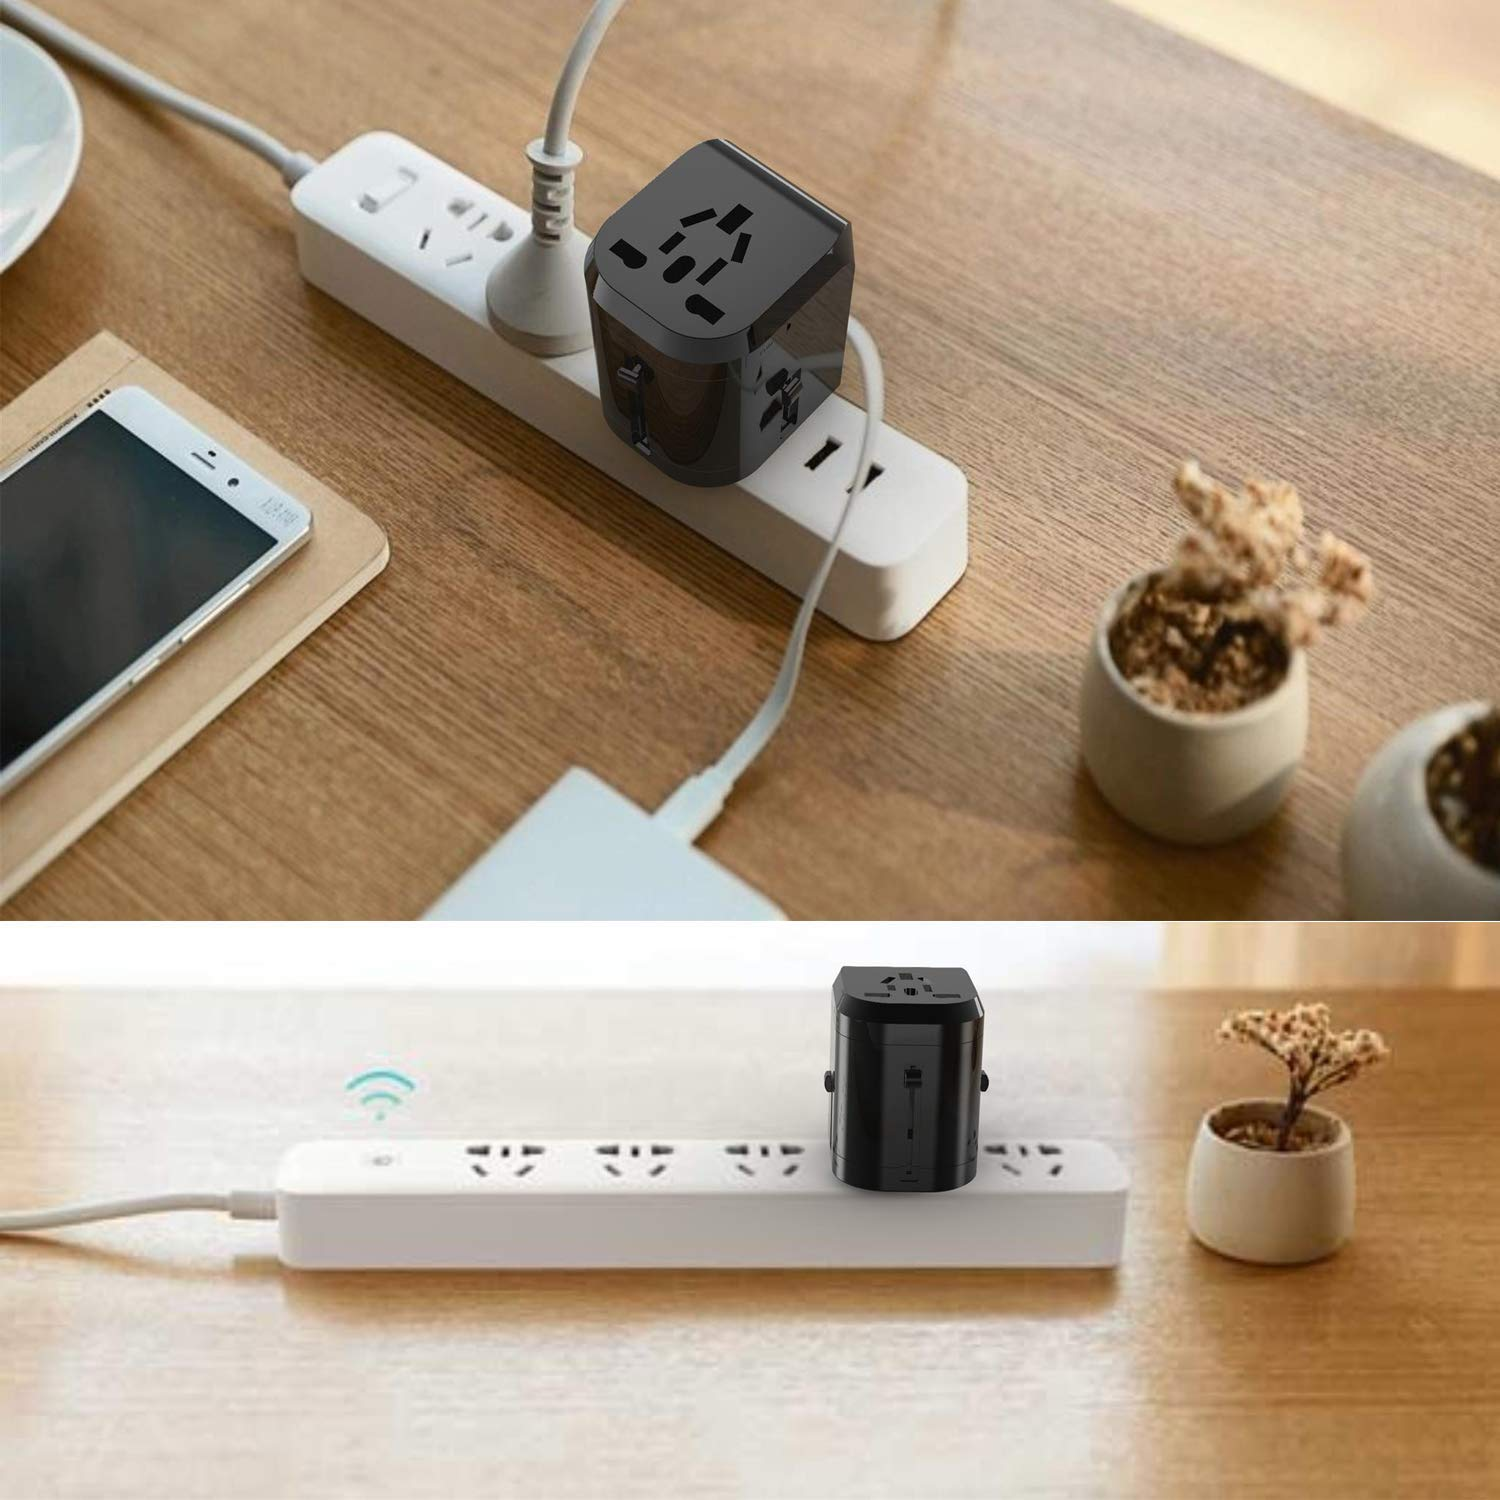 Universal USB Travel Power Adapter-Silanger All In One Wall Charger AC Power Plug Adapter For USA EU UK AUS Cell Phone Laptop Including Quad 3.5A Smart Power USB Charging Port (4X USB) by Silanger (Image #4)